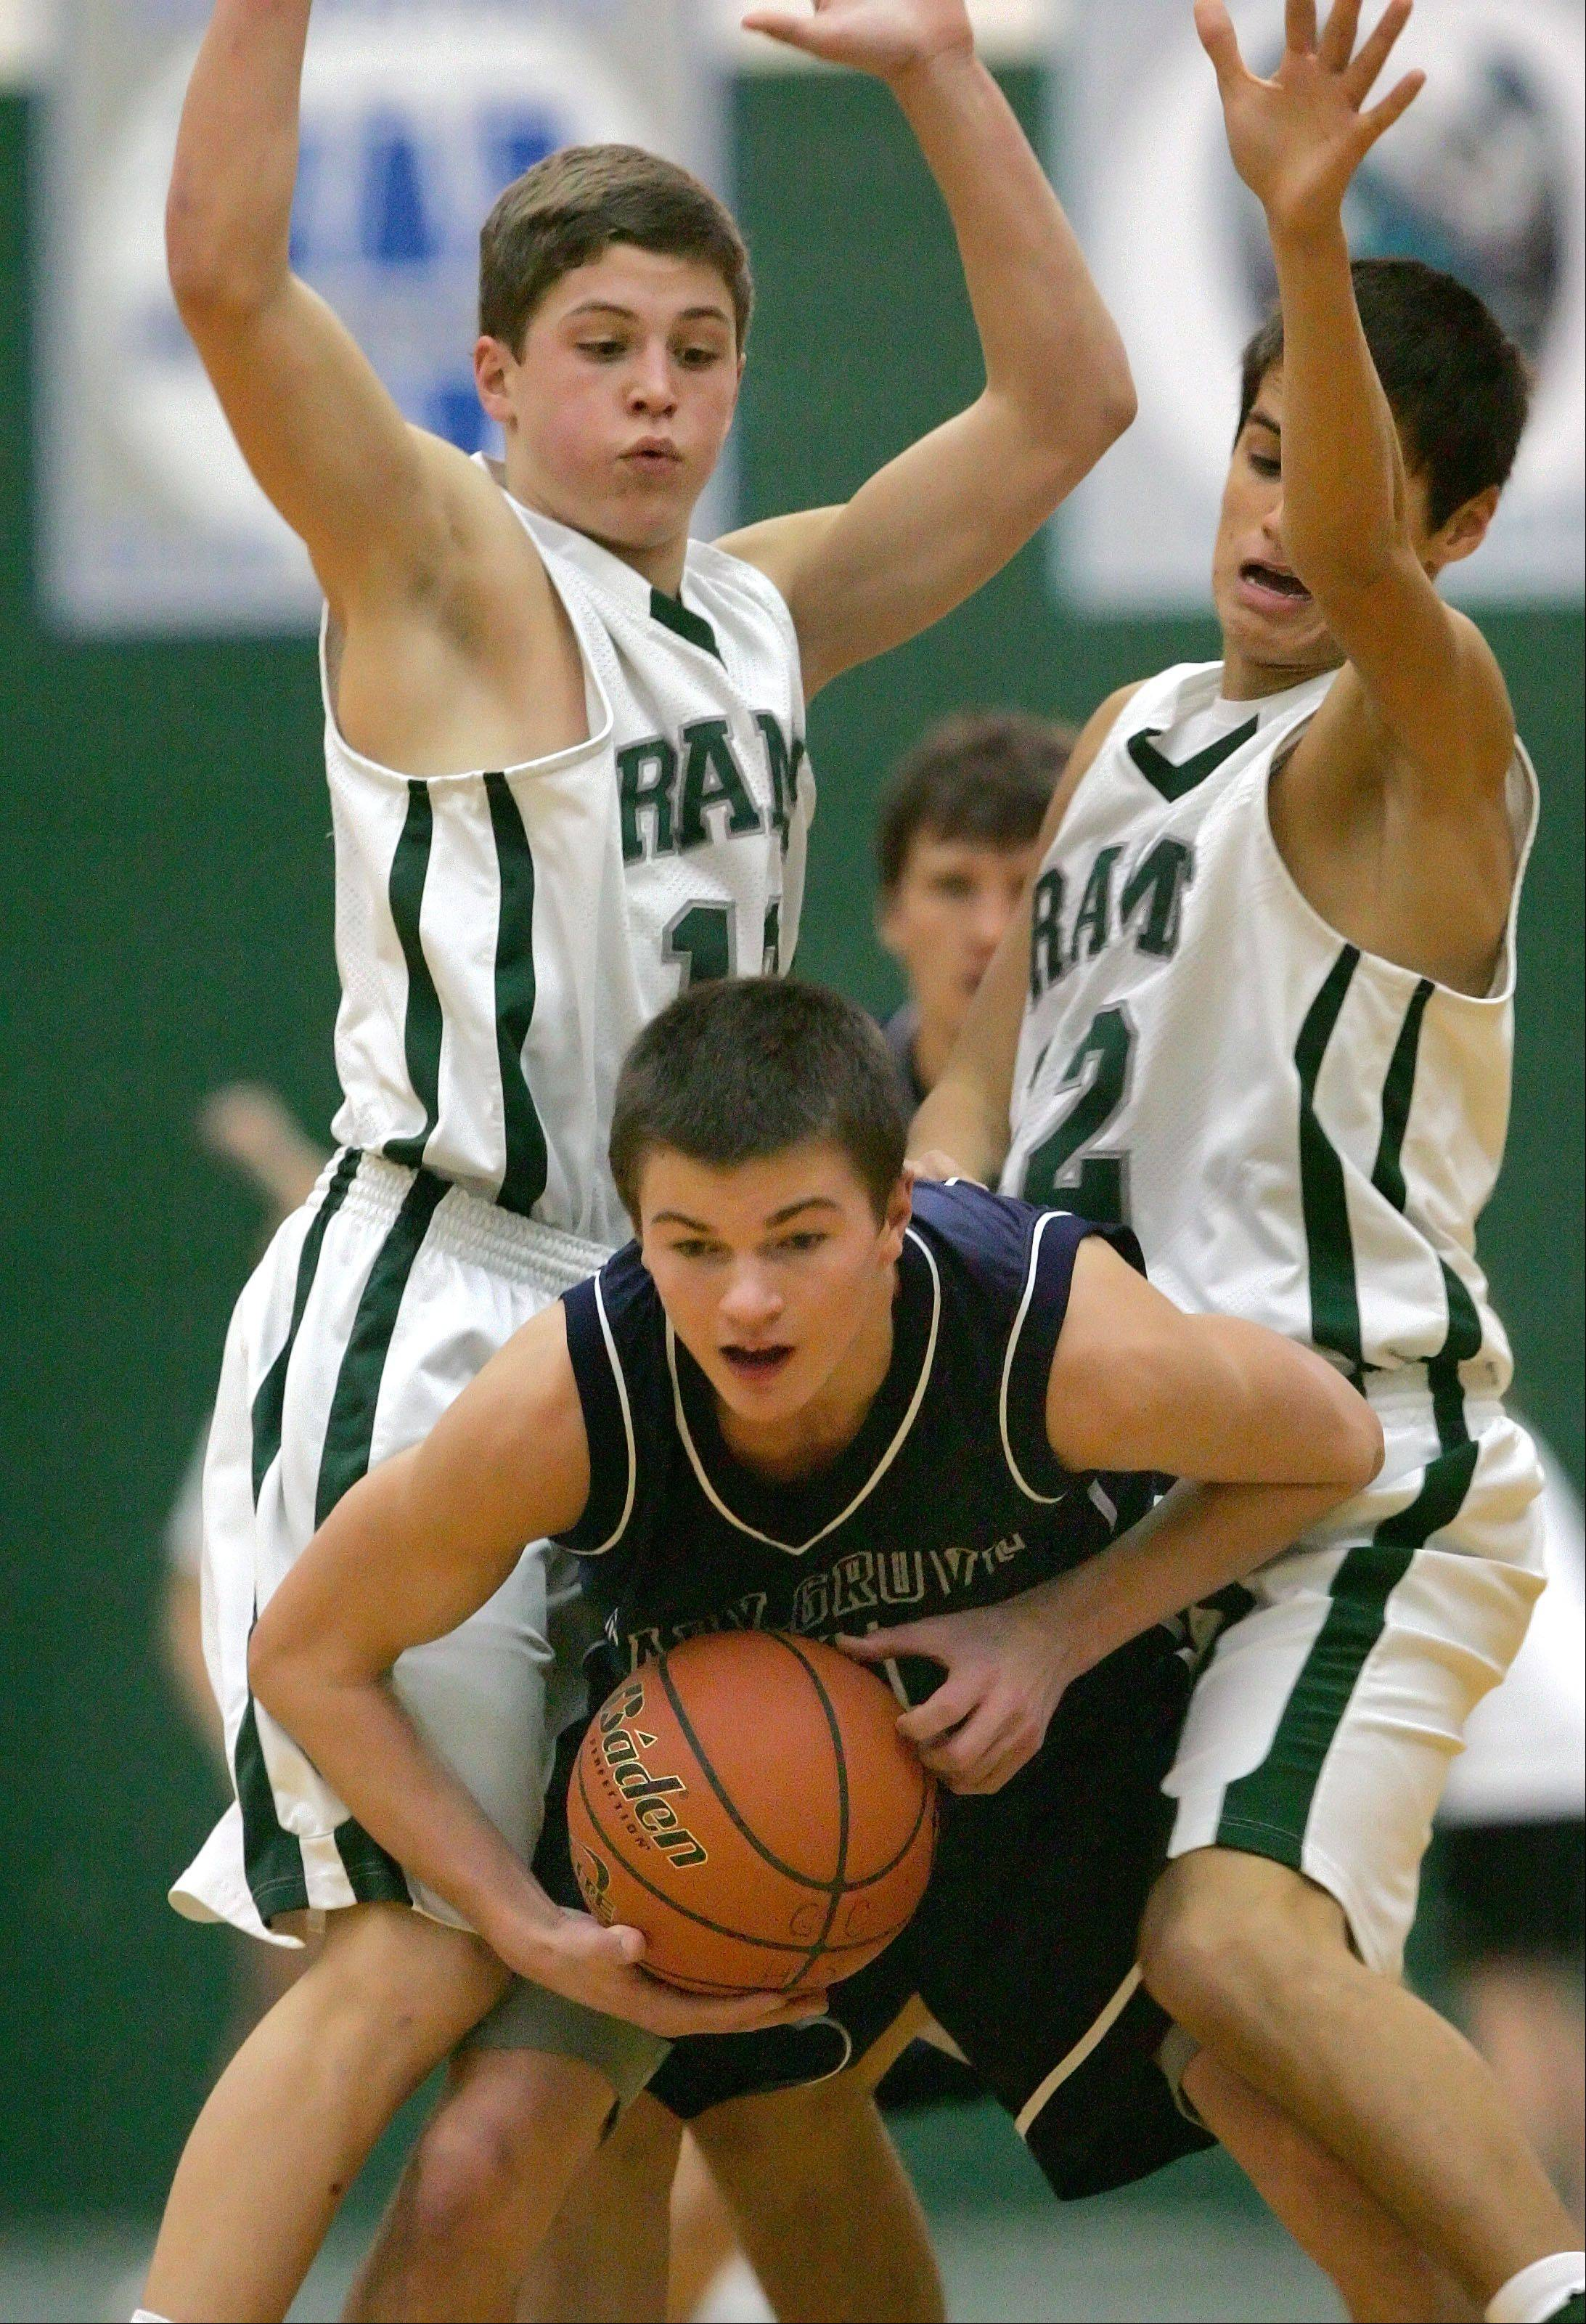 Grayslake Central's Joey Mudd, left, and Kevin Orozco double team Cary-Grove's Ian May during their game Tuesday night in Grayslake.